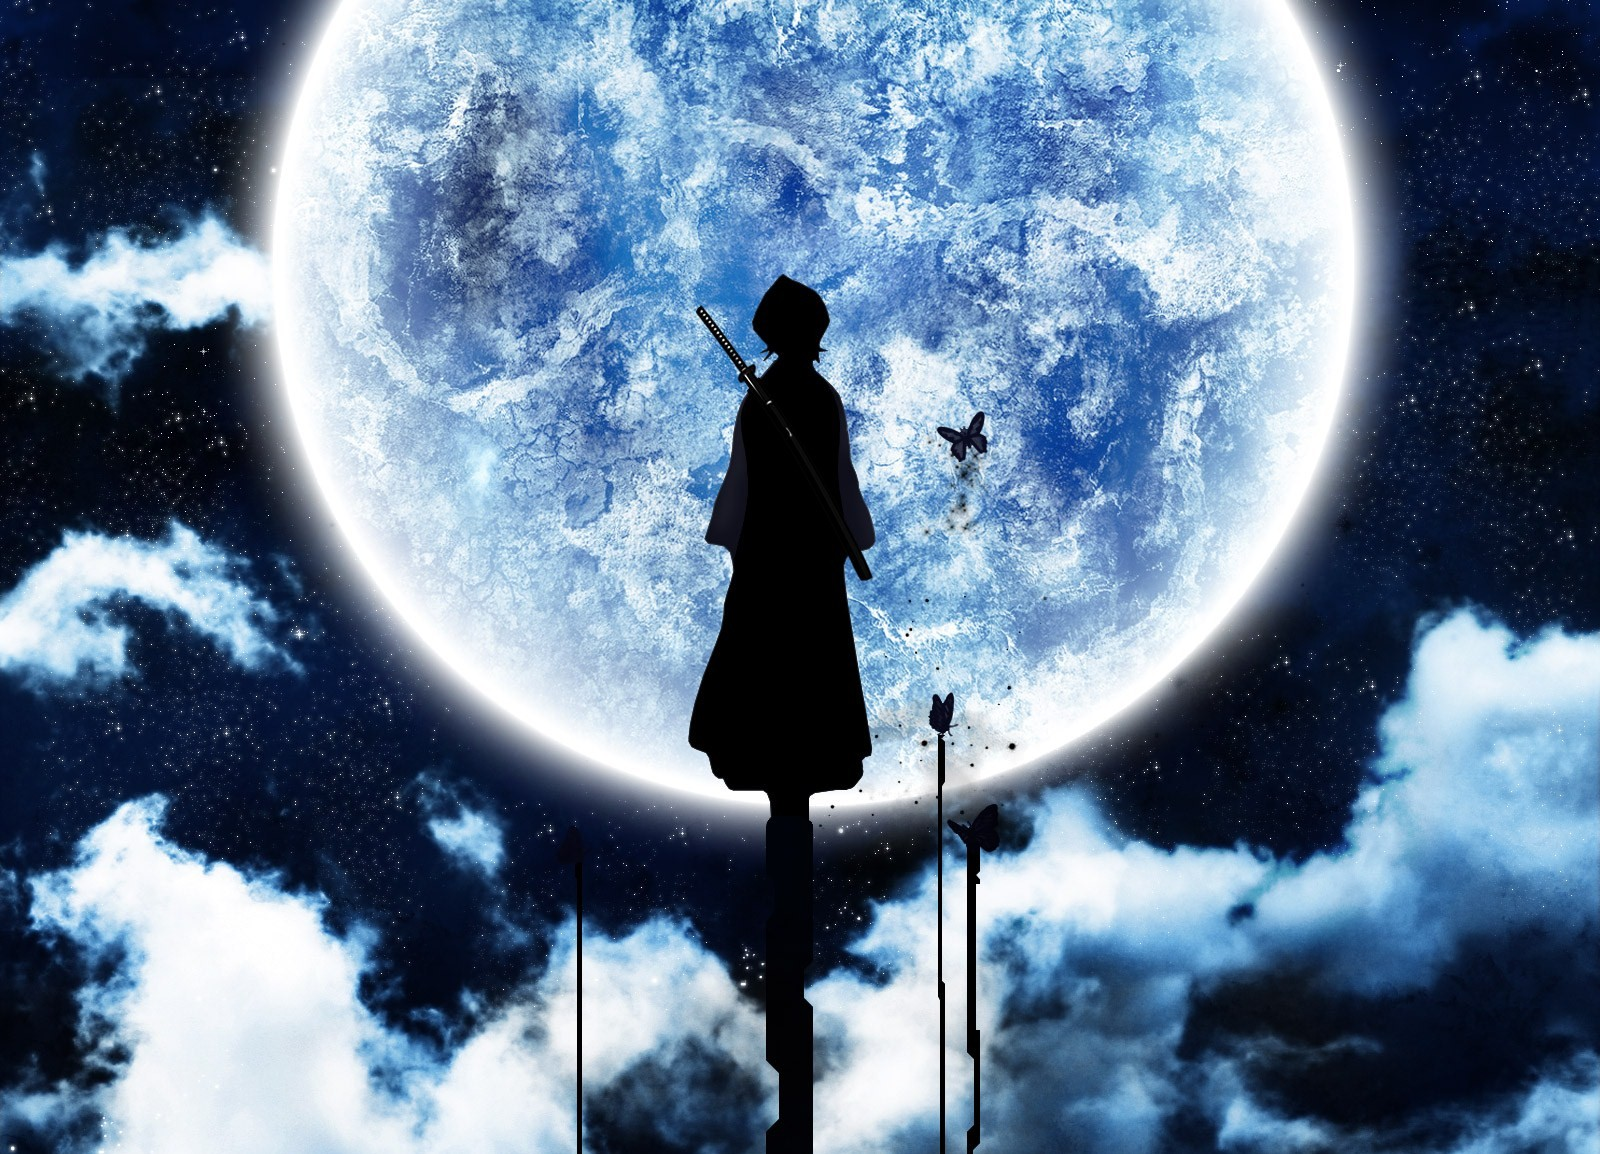 Best anime wallpaper backgrounds cool anime wallpaper - Anime backdrop wallpaper ...